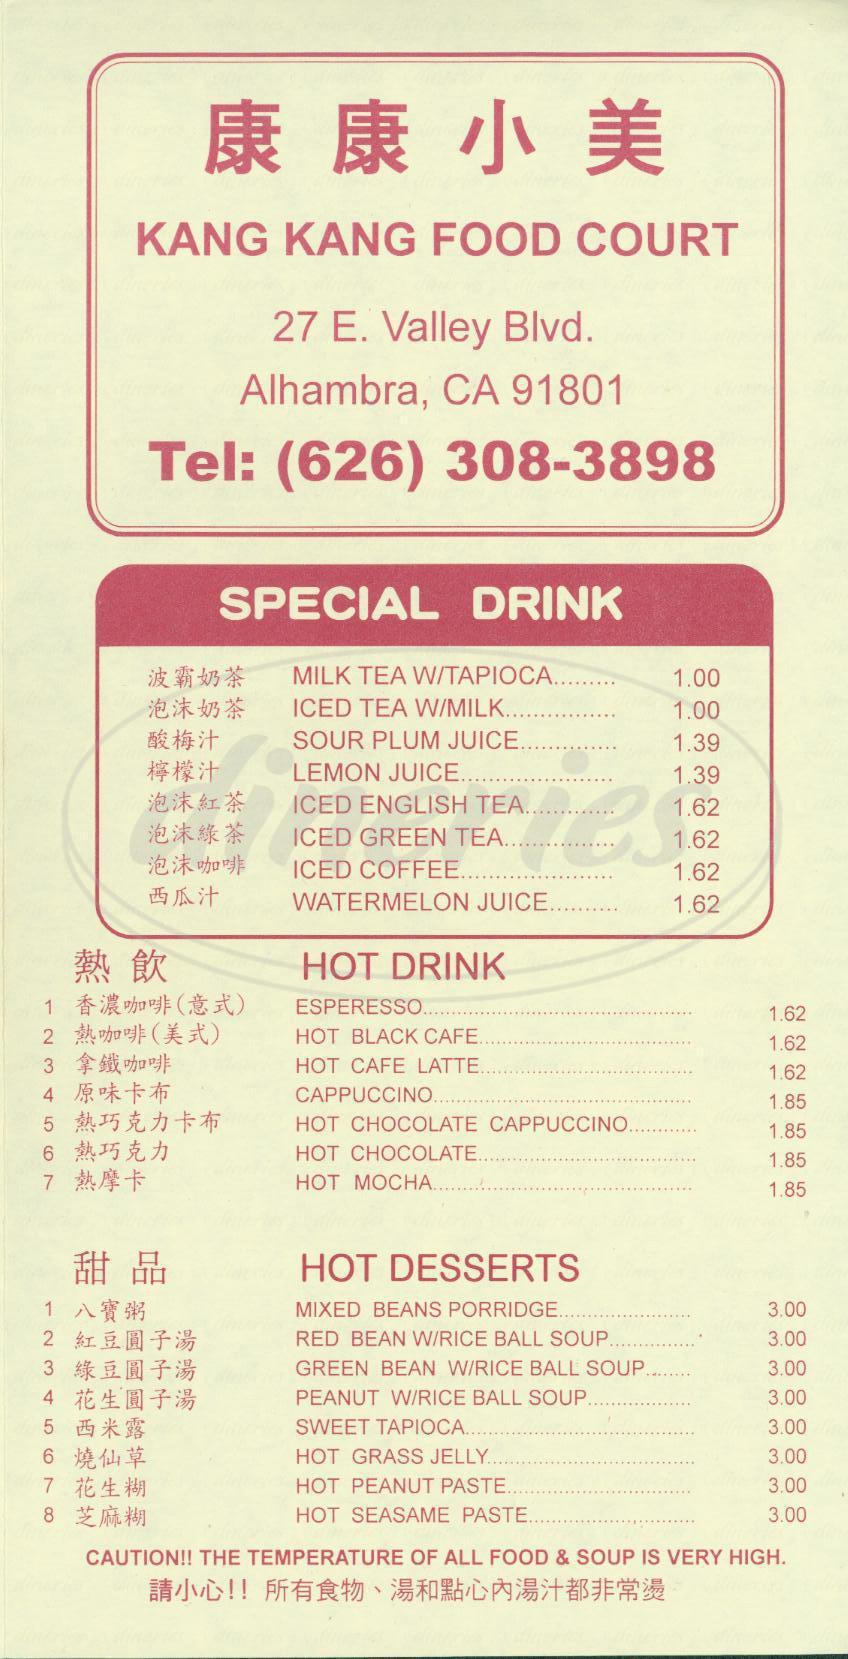 menu for Kang Kang Food Court